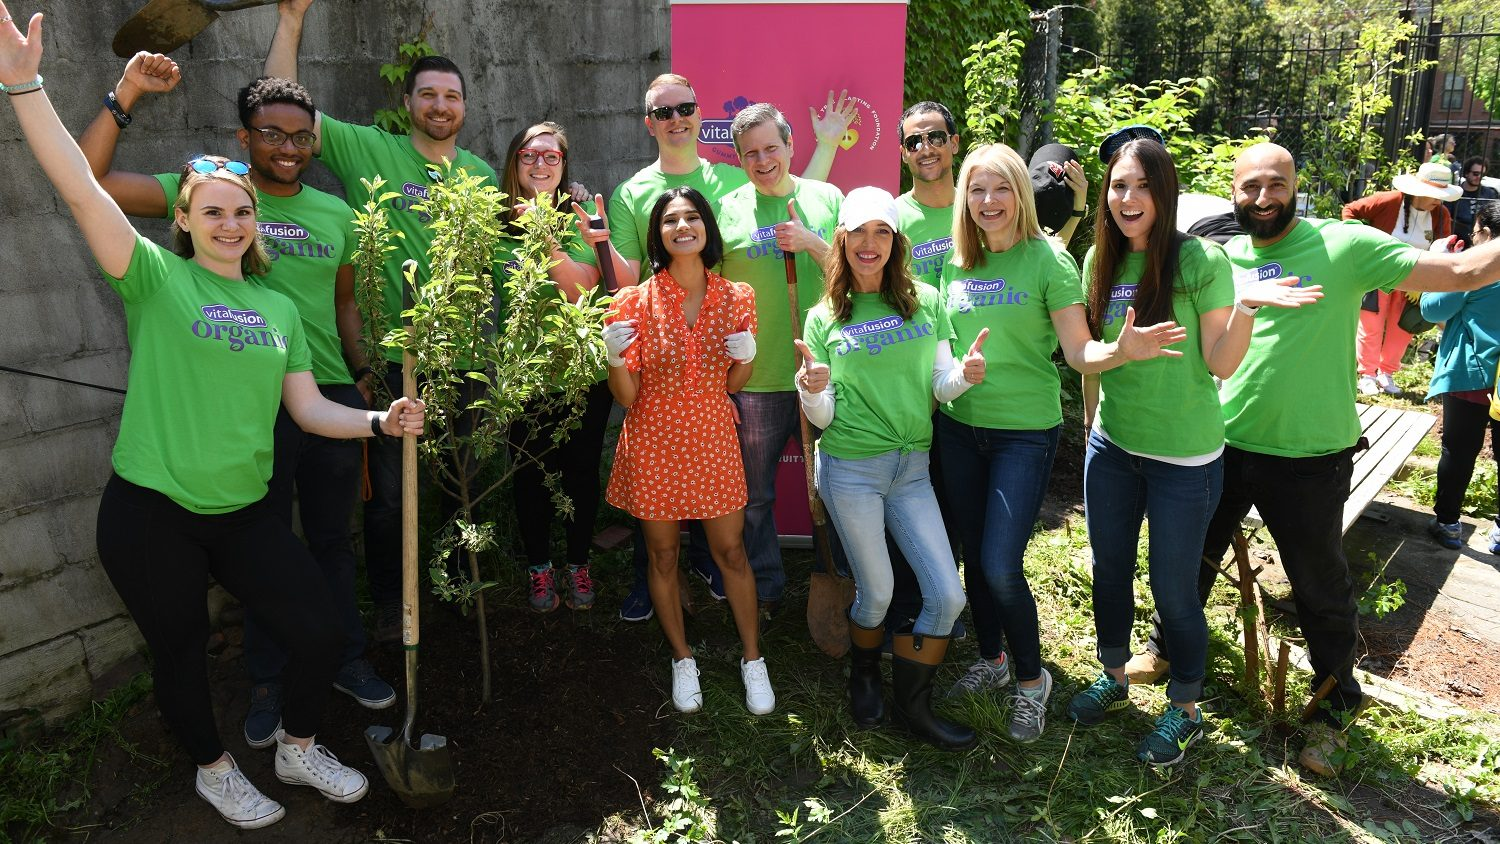 A group of people in green shirts pose for the camera holding gardening tools